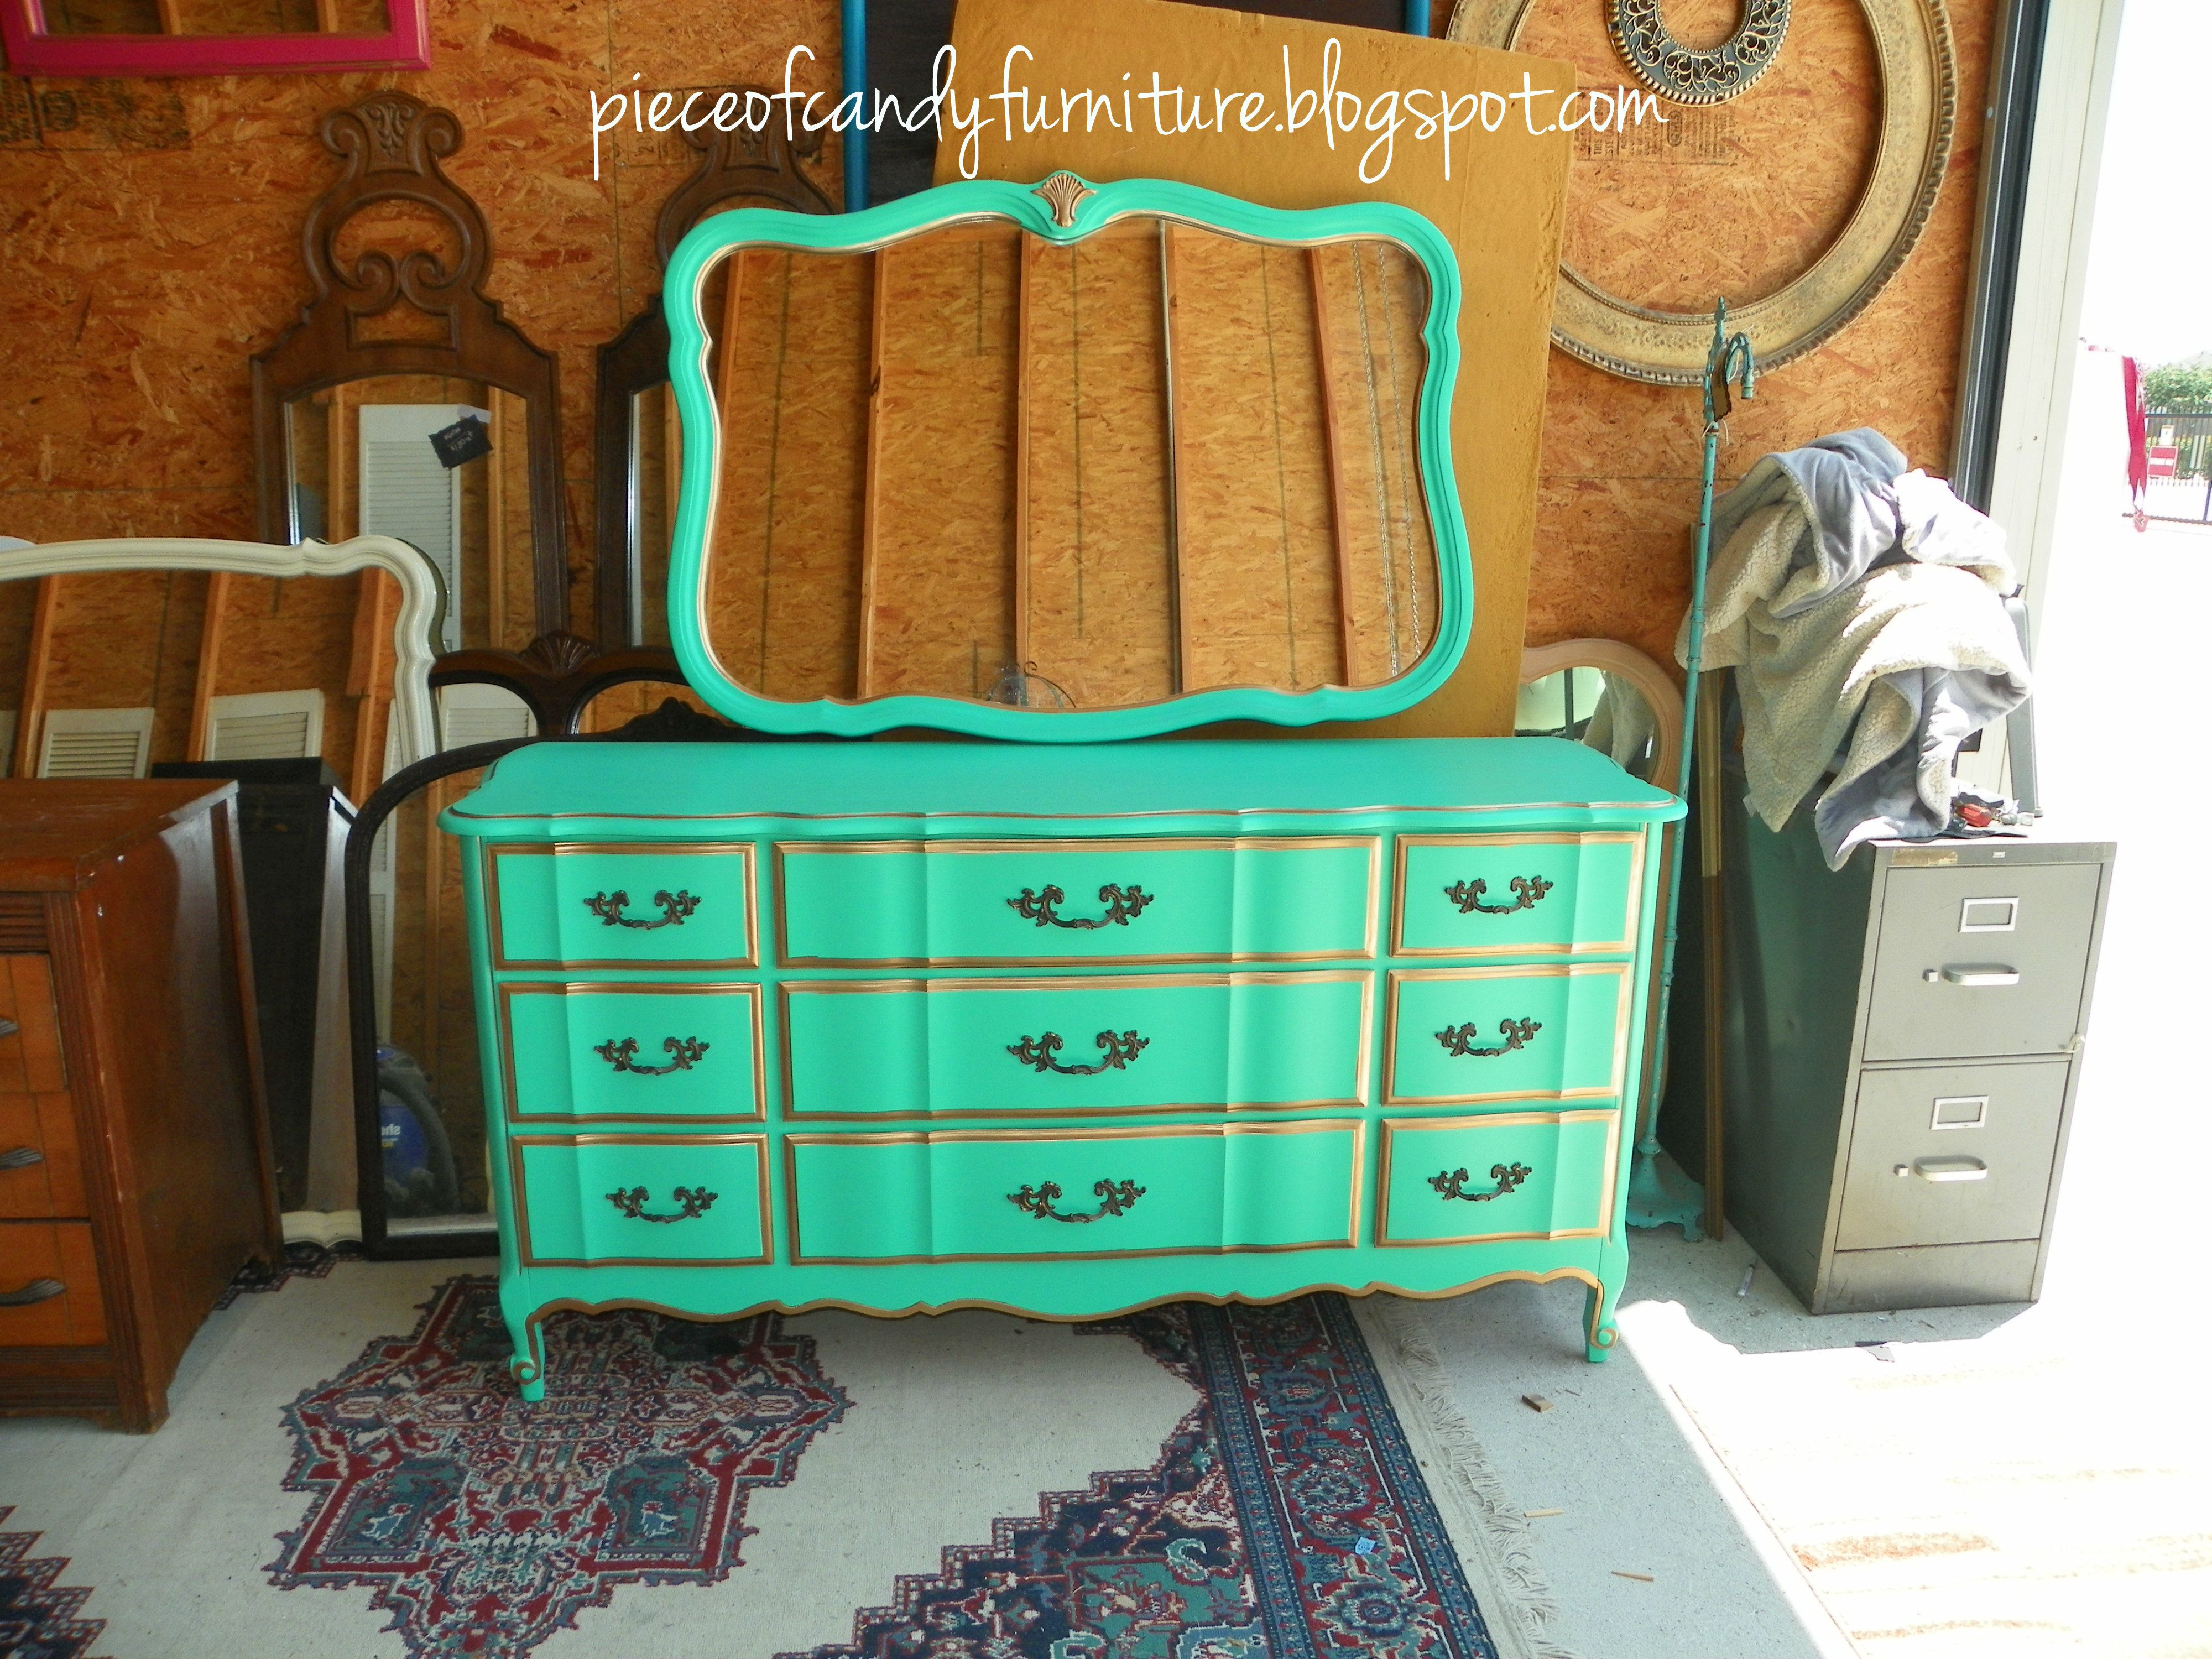 French Provincial Kent Coffey Dresser With Mirror Painted In A Teal Green With Gold Detail Pieceofcandy Teal Paint Dresser With Mirror Kent Coffey Dresser